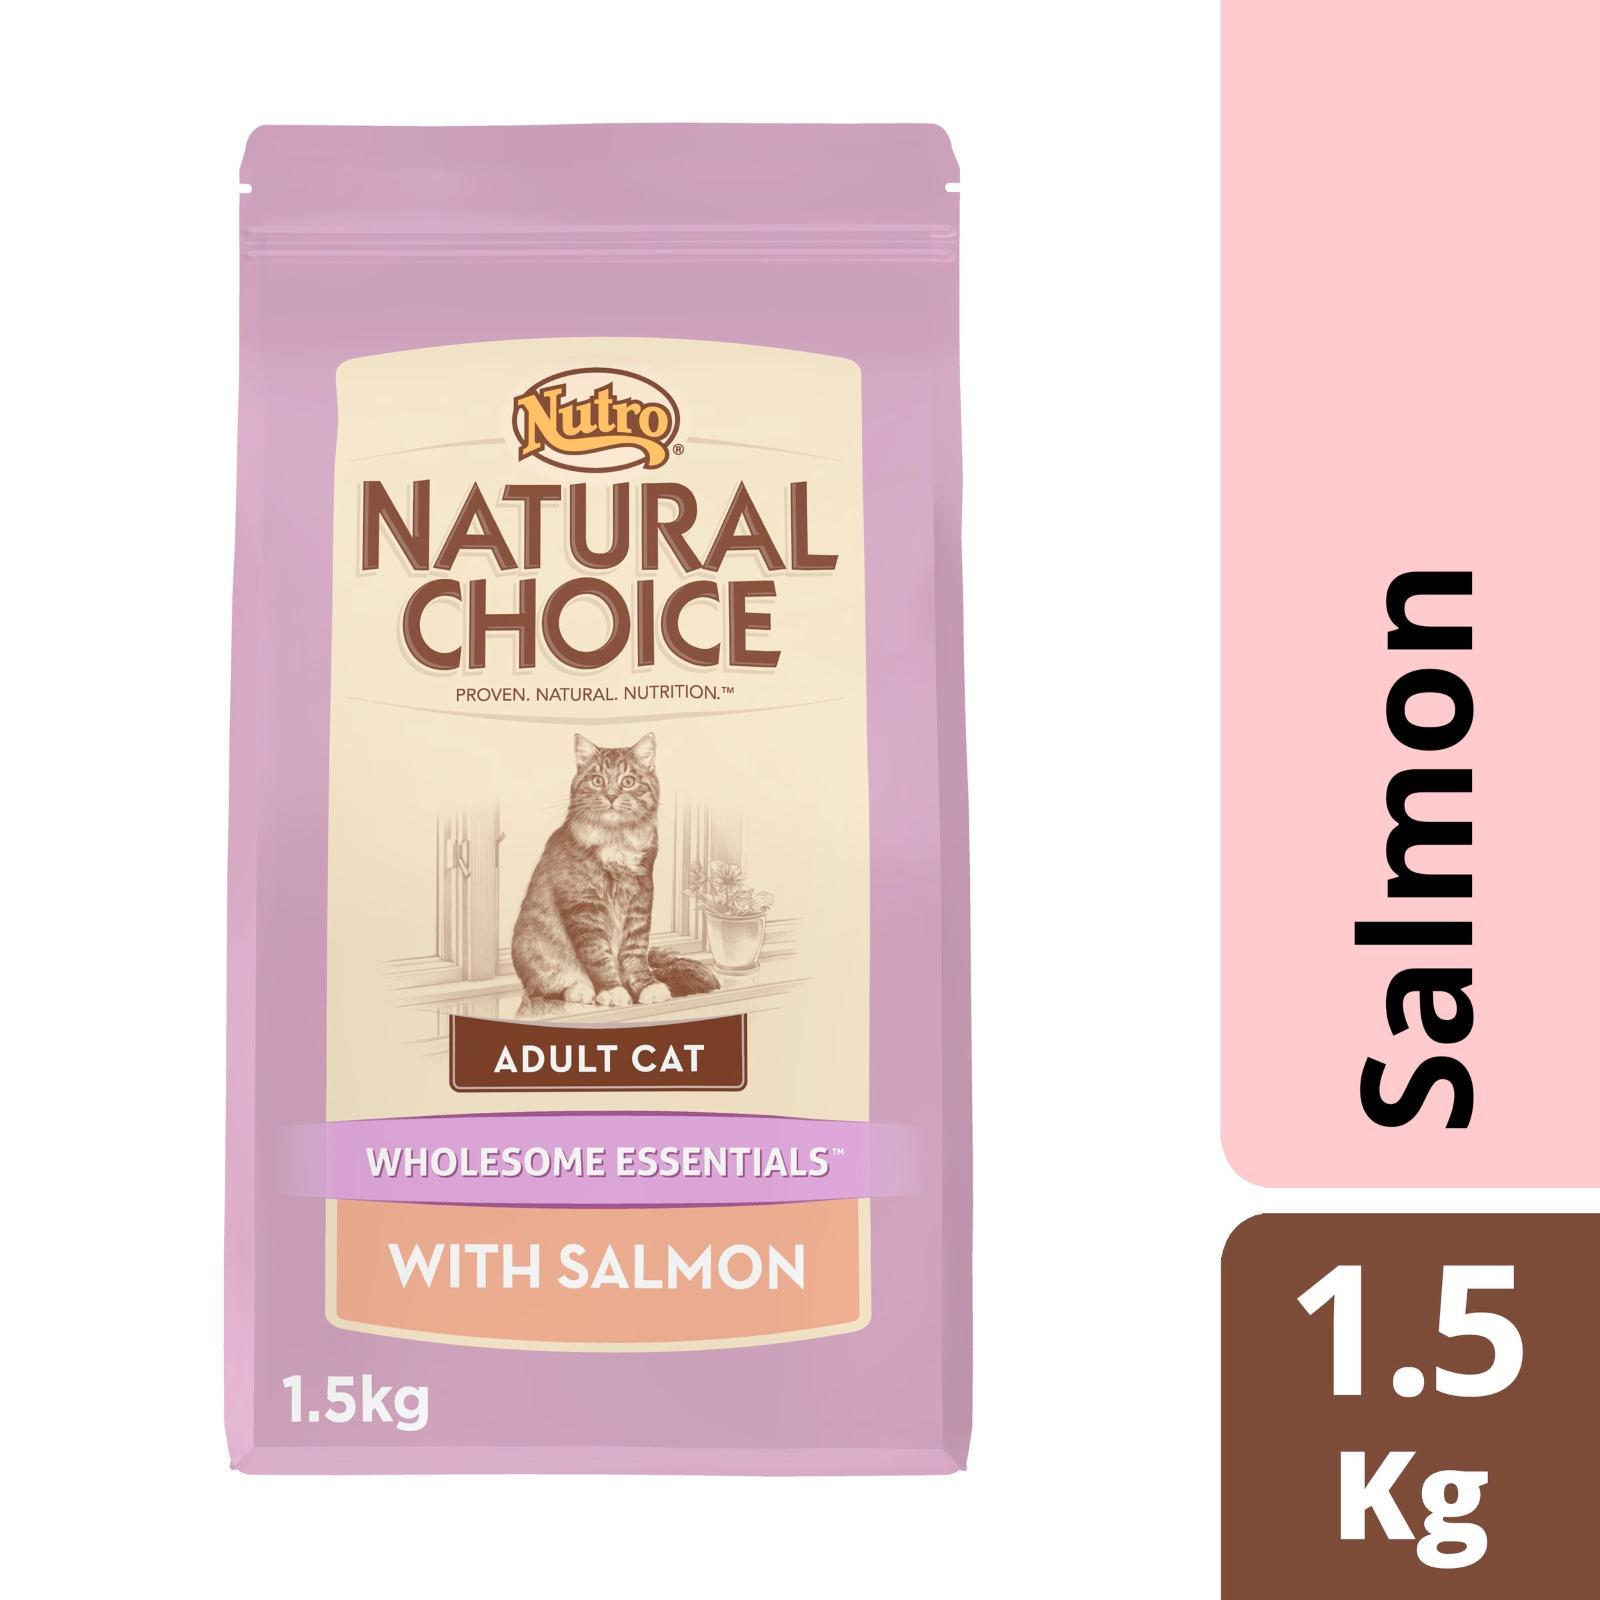 Nutro Cat Dry Wholesome Essential Adult Salmon Cat Food